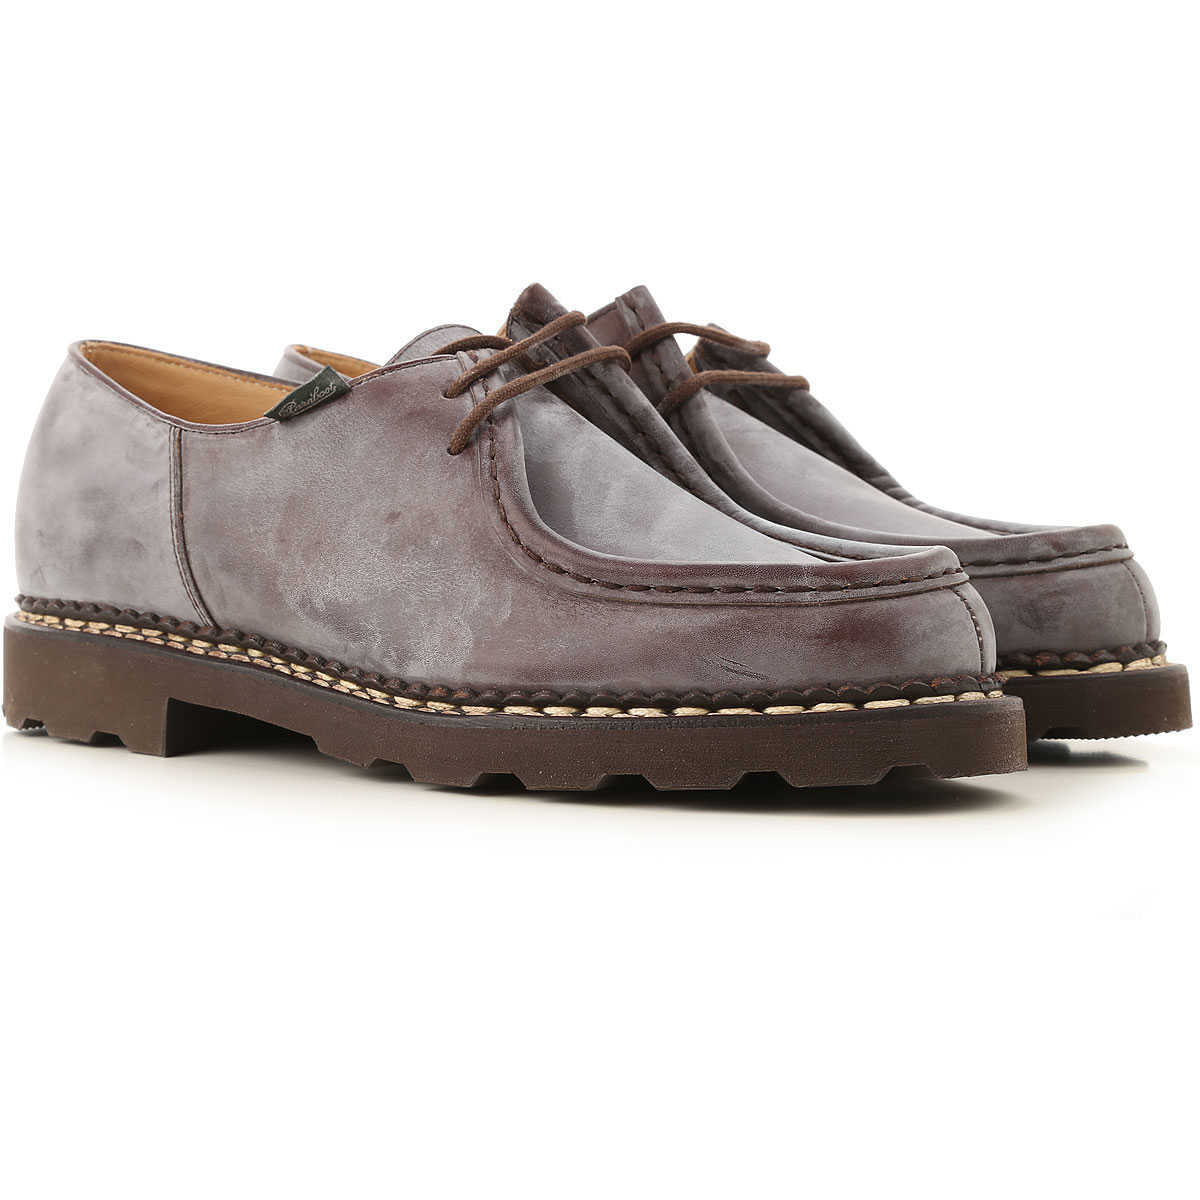 Paraboot Lace Up Shoes for Men Oxfords Derbies and Brogues Canada - GOOFASH - Mens BOOTS